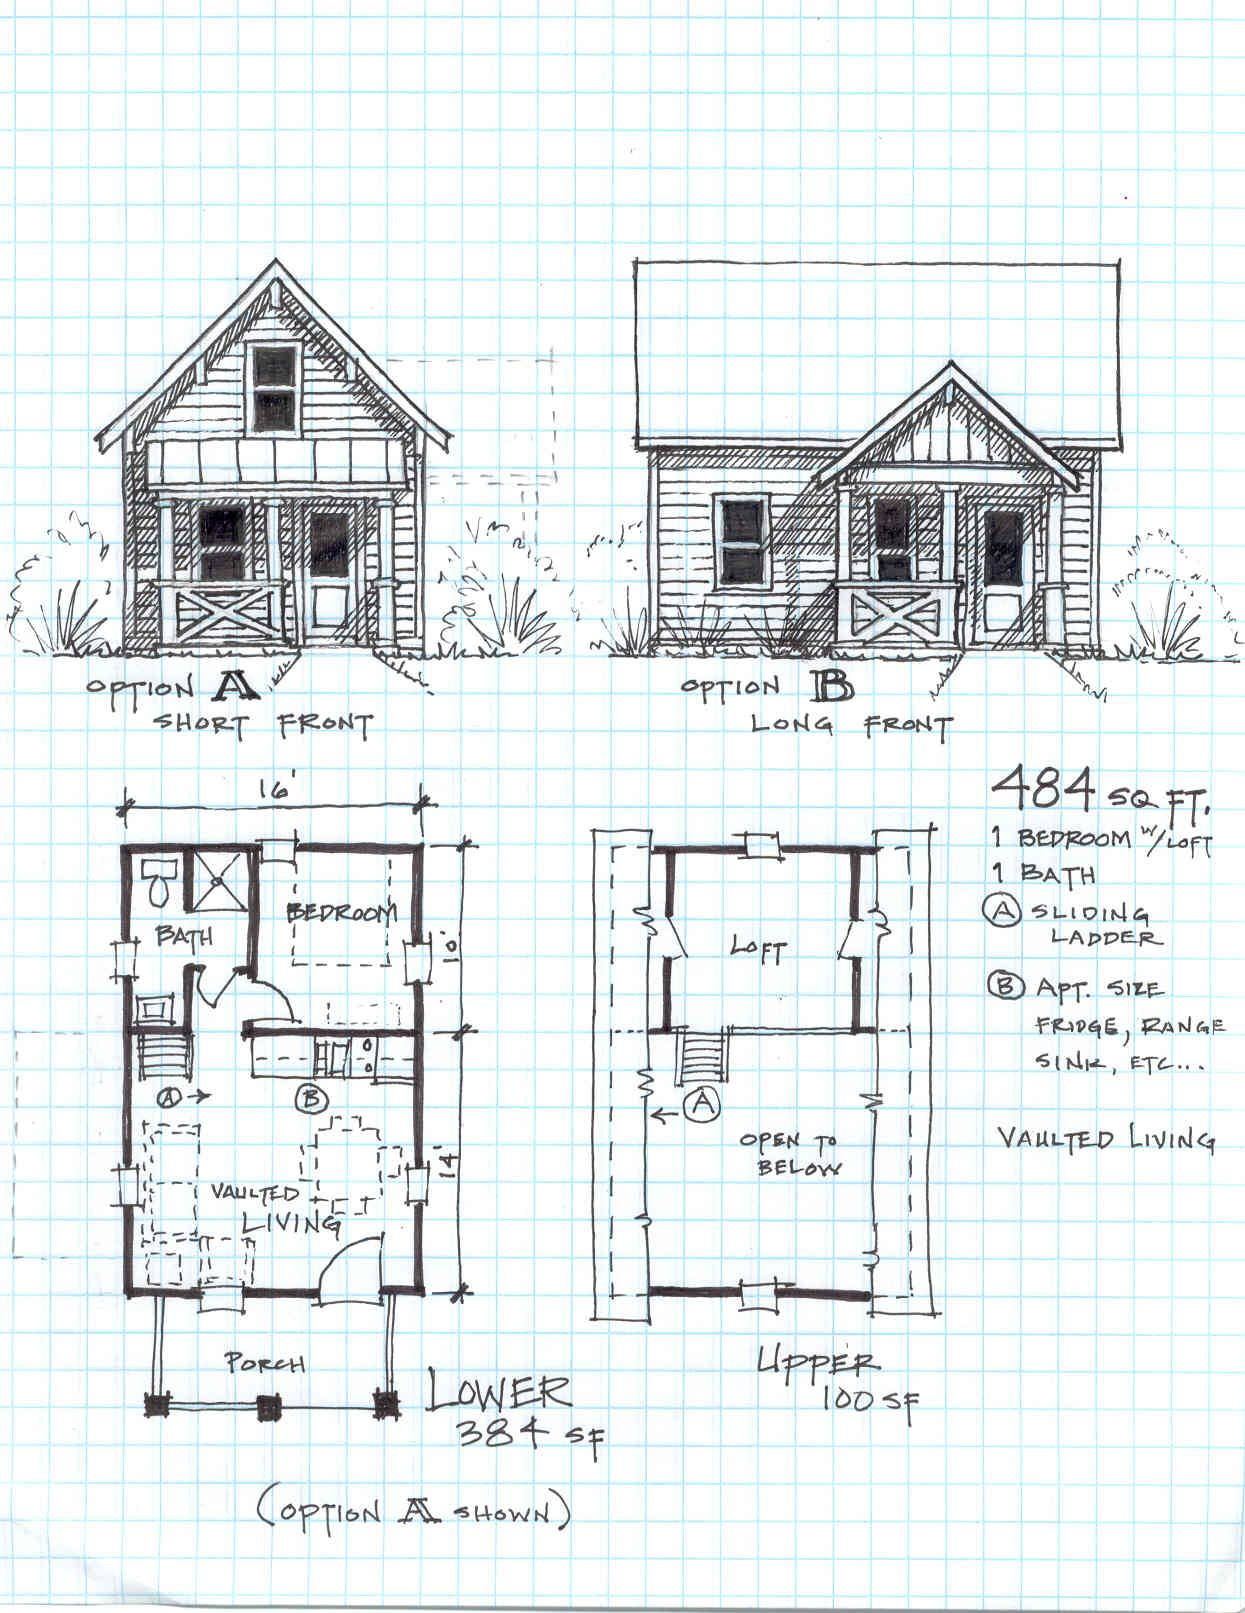 really want to live in  small open floor plan cabin maybe with bit more room than this one like two bedroom loft also not found some day home ideas plans house rh pinterest